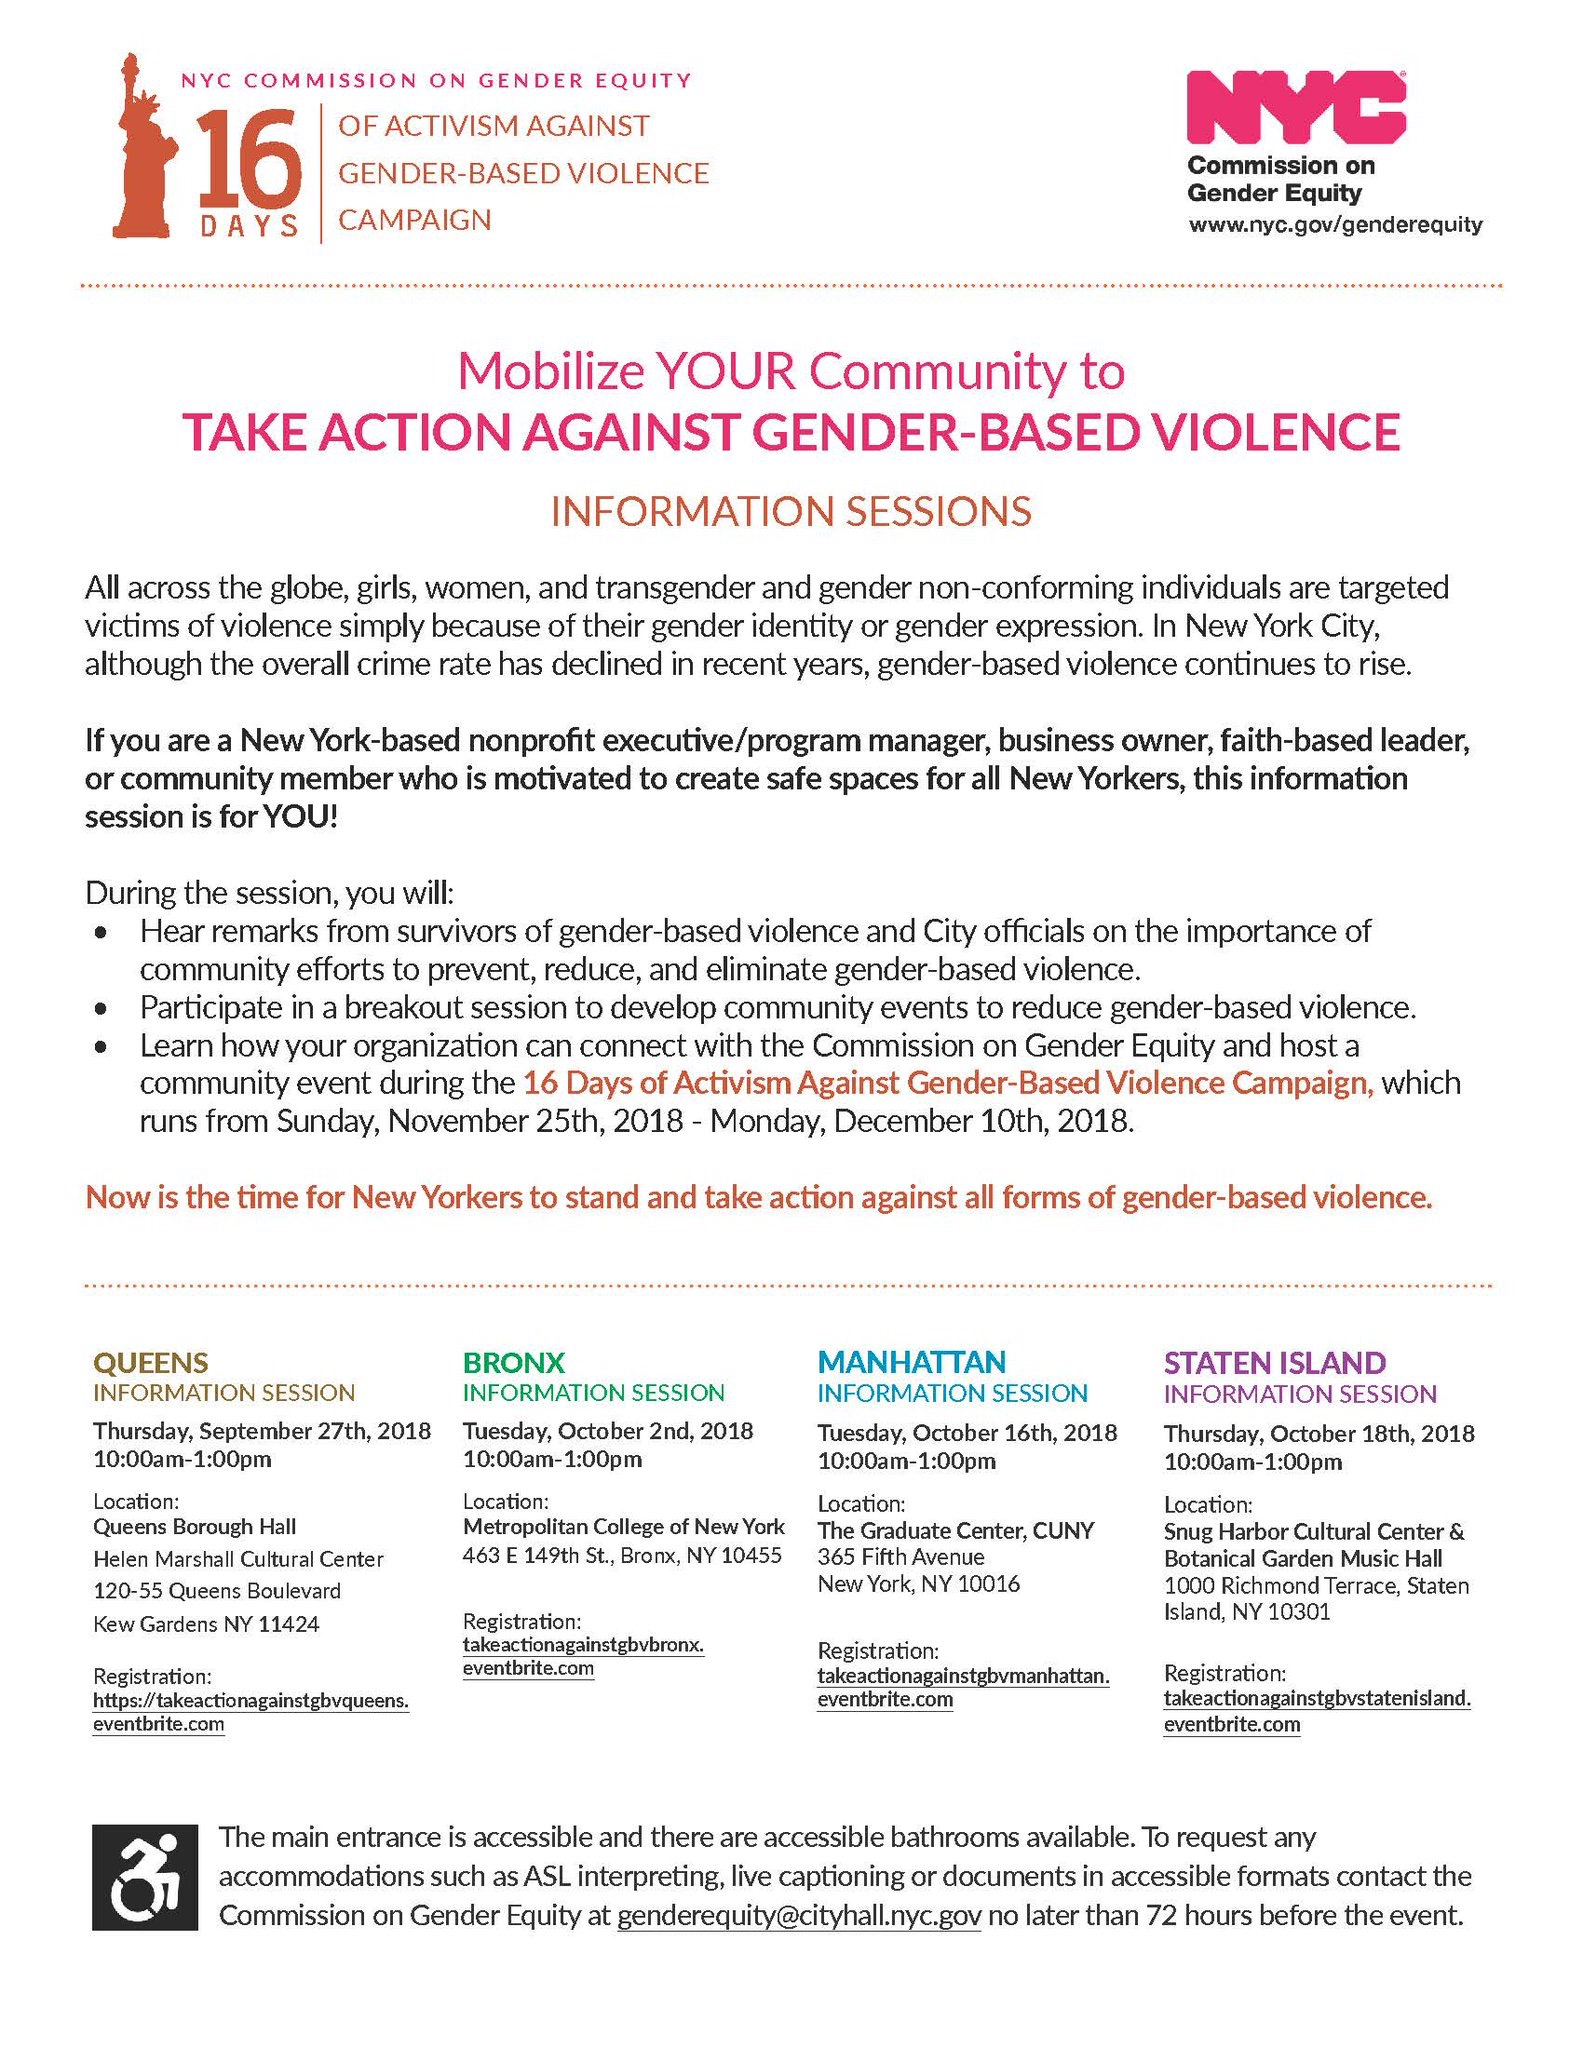 Public Information Session: Take Action Against Gender-Based Violence